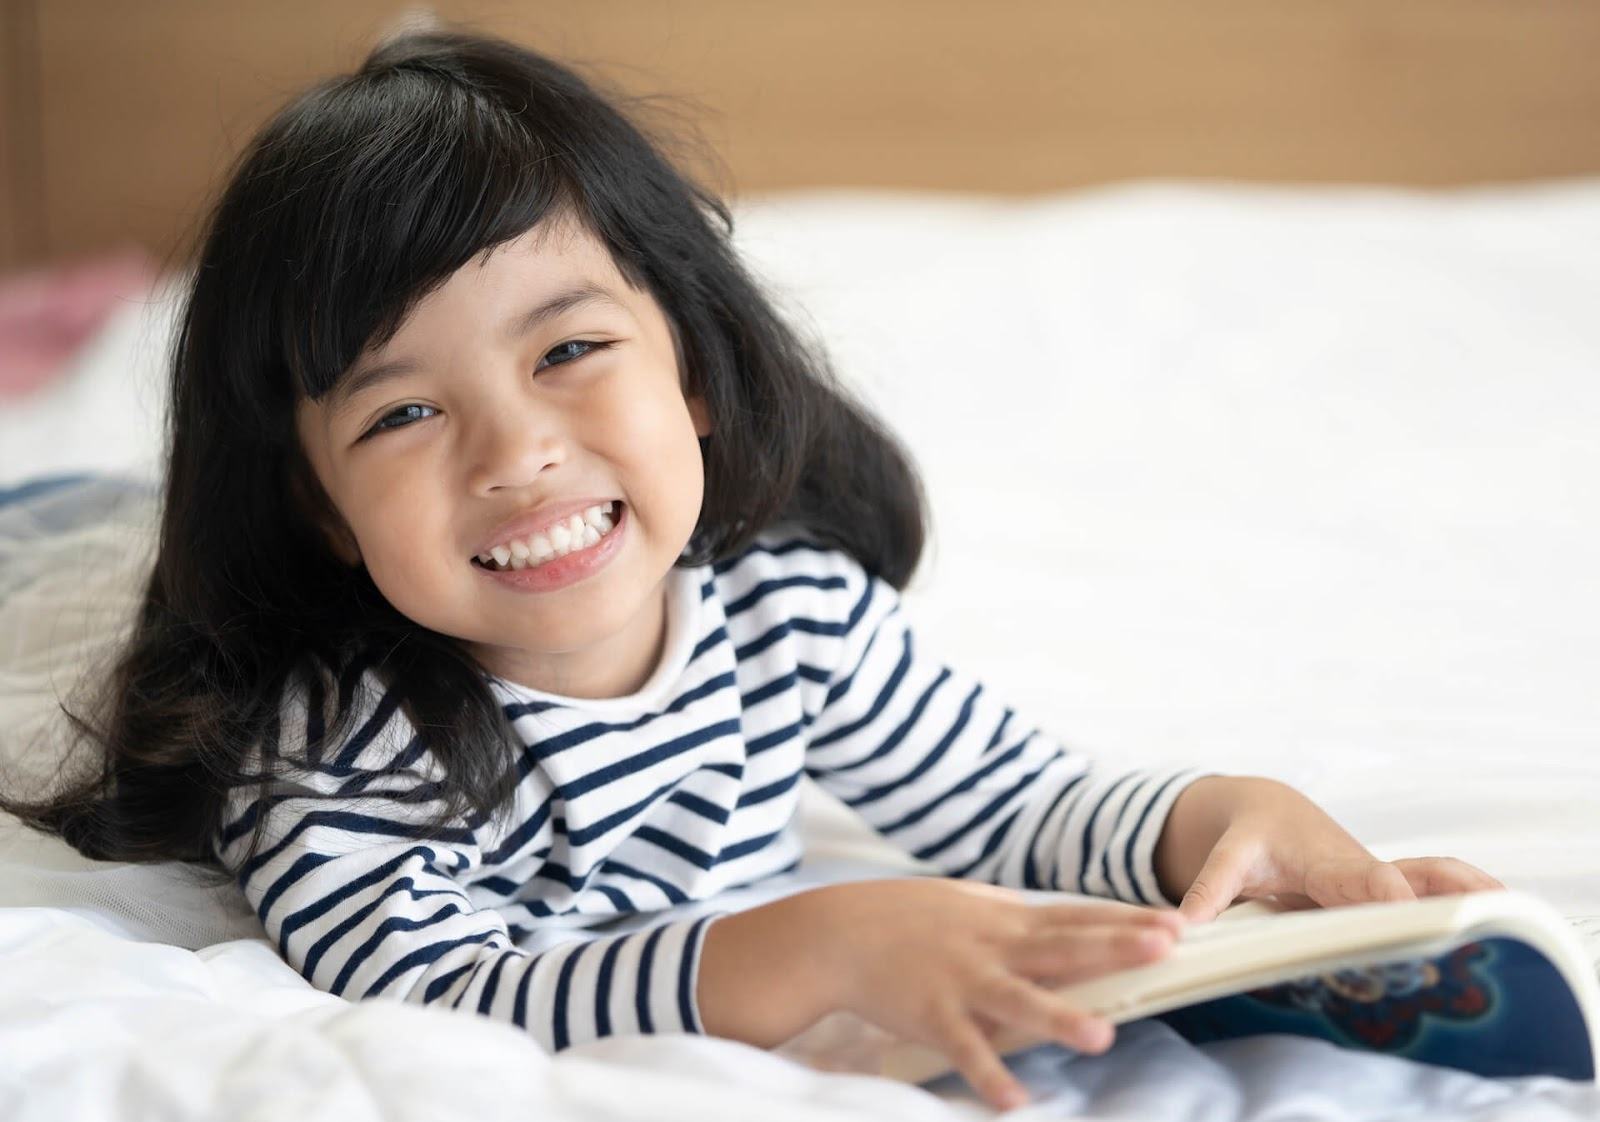 Young asian girl smiling on a bed with her book